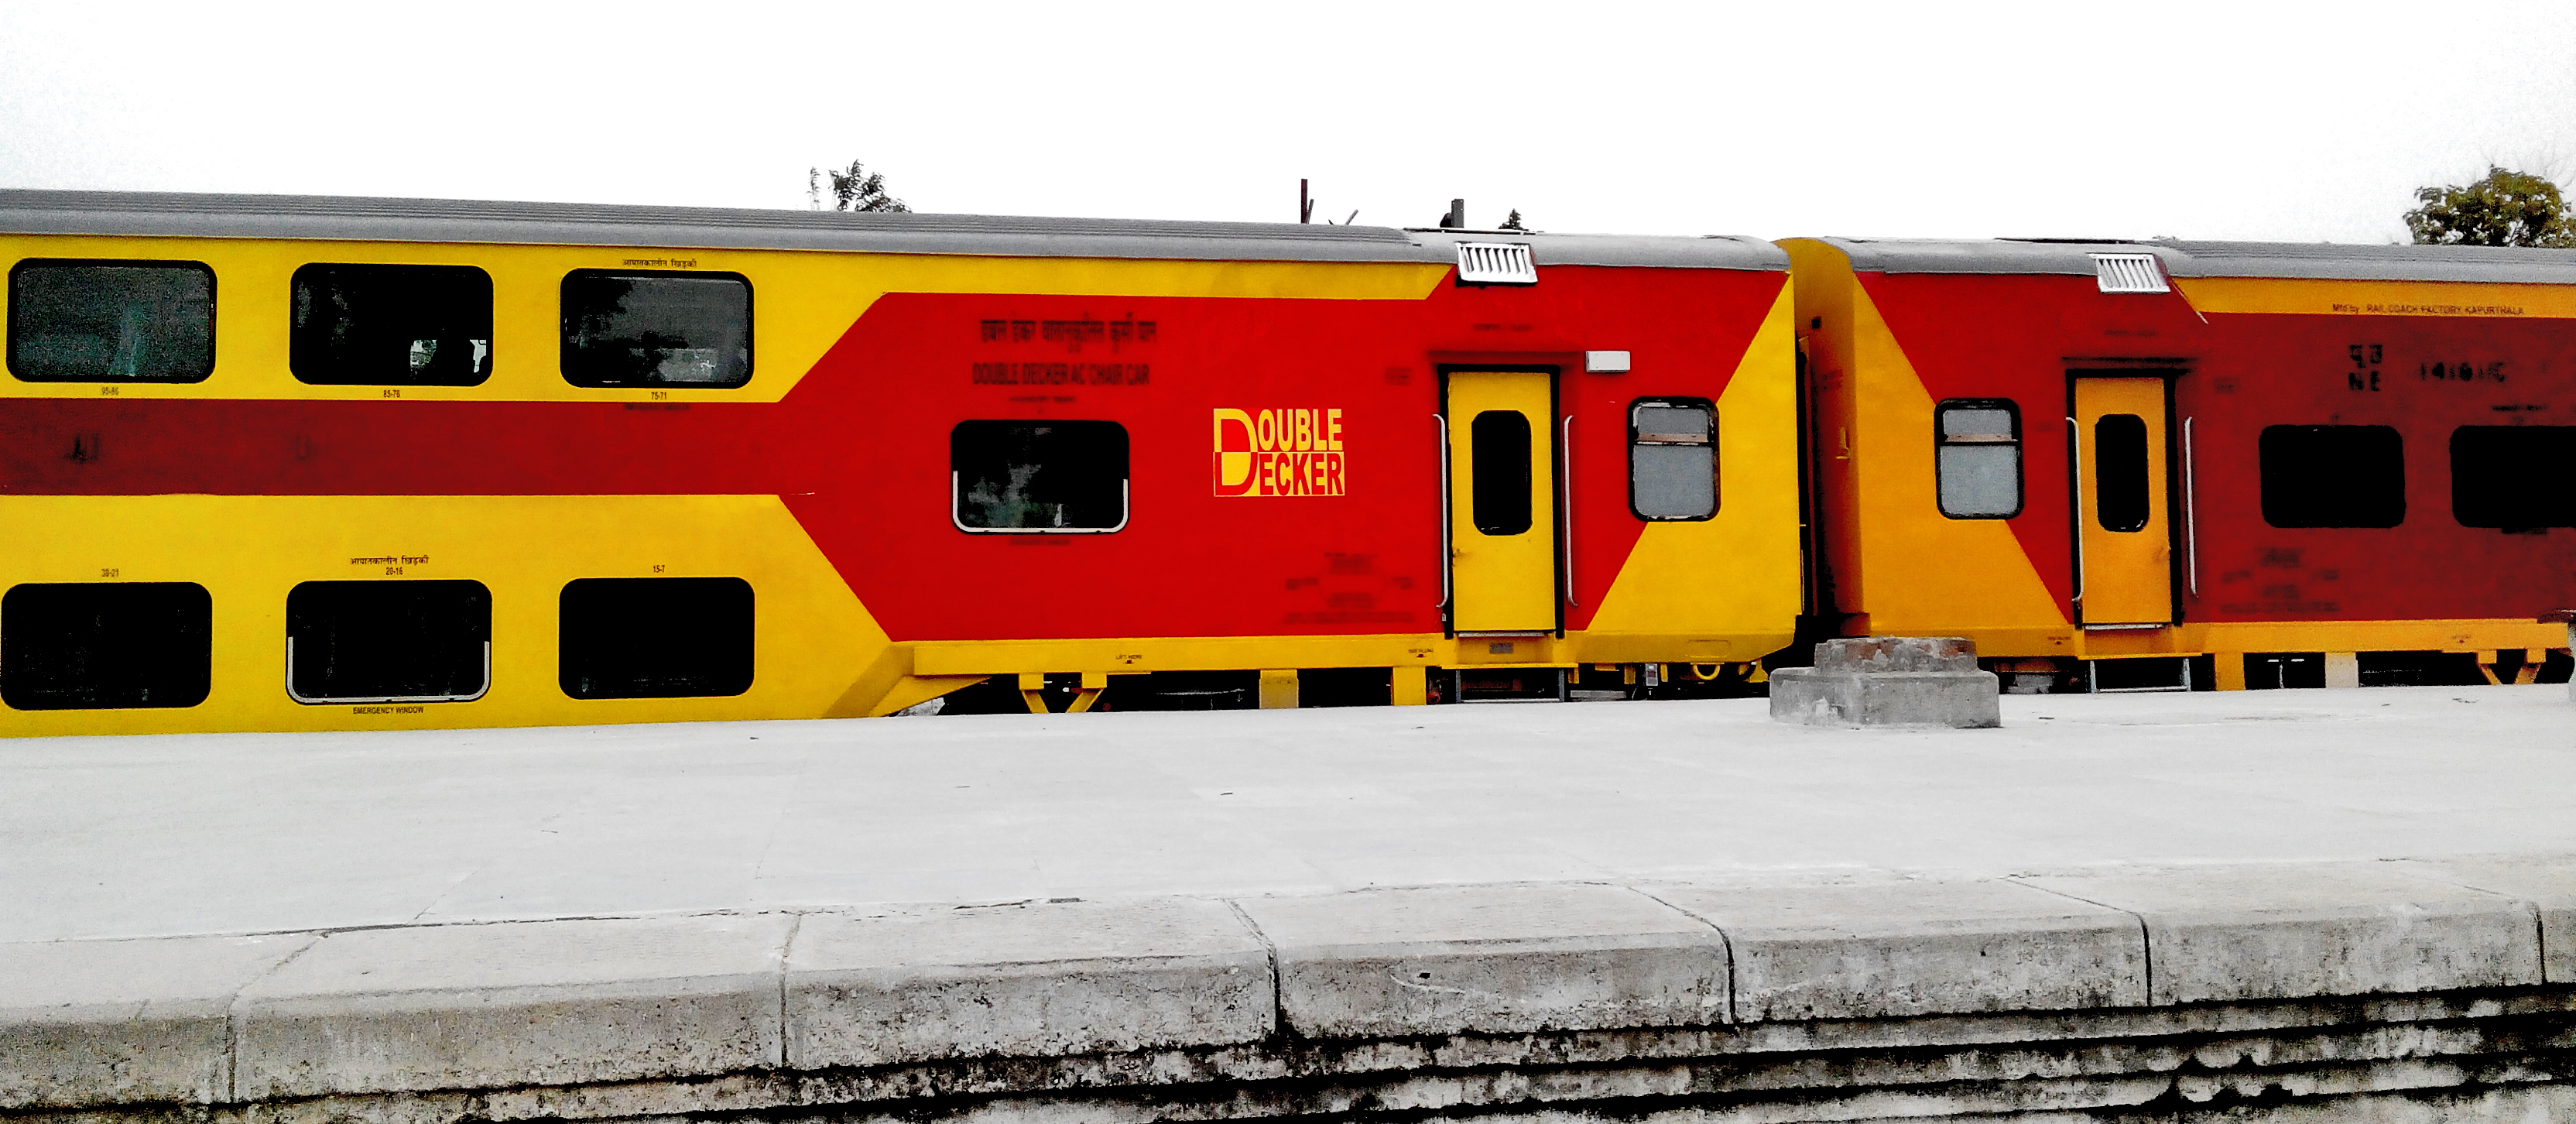 Picture of double decker train that runs between lucknow and new-delhi